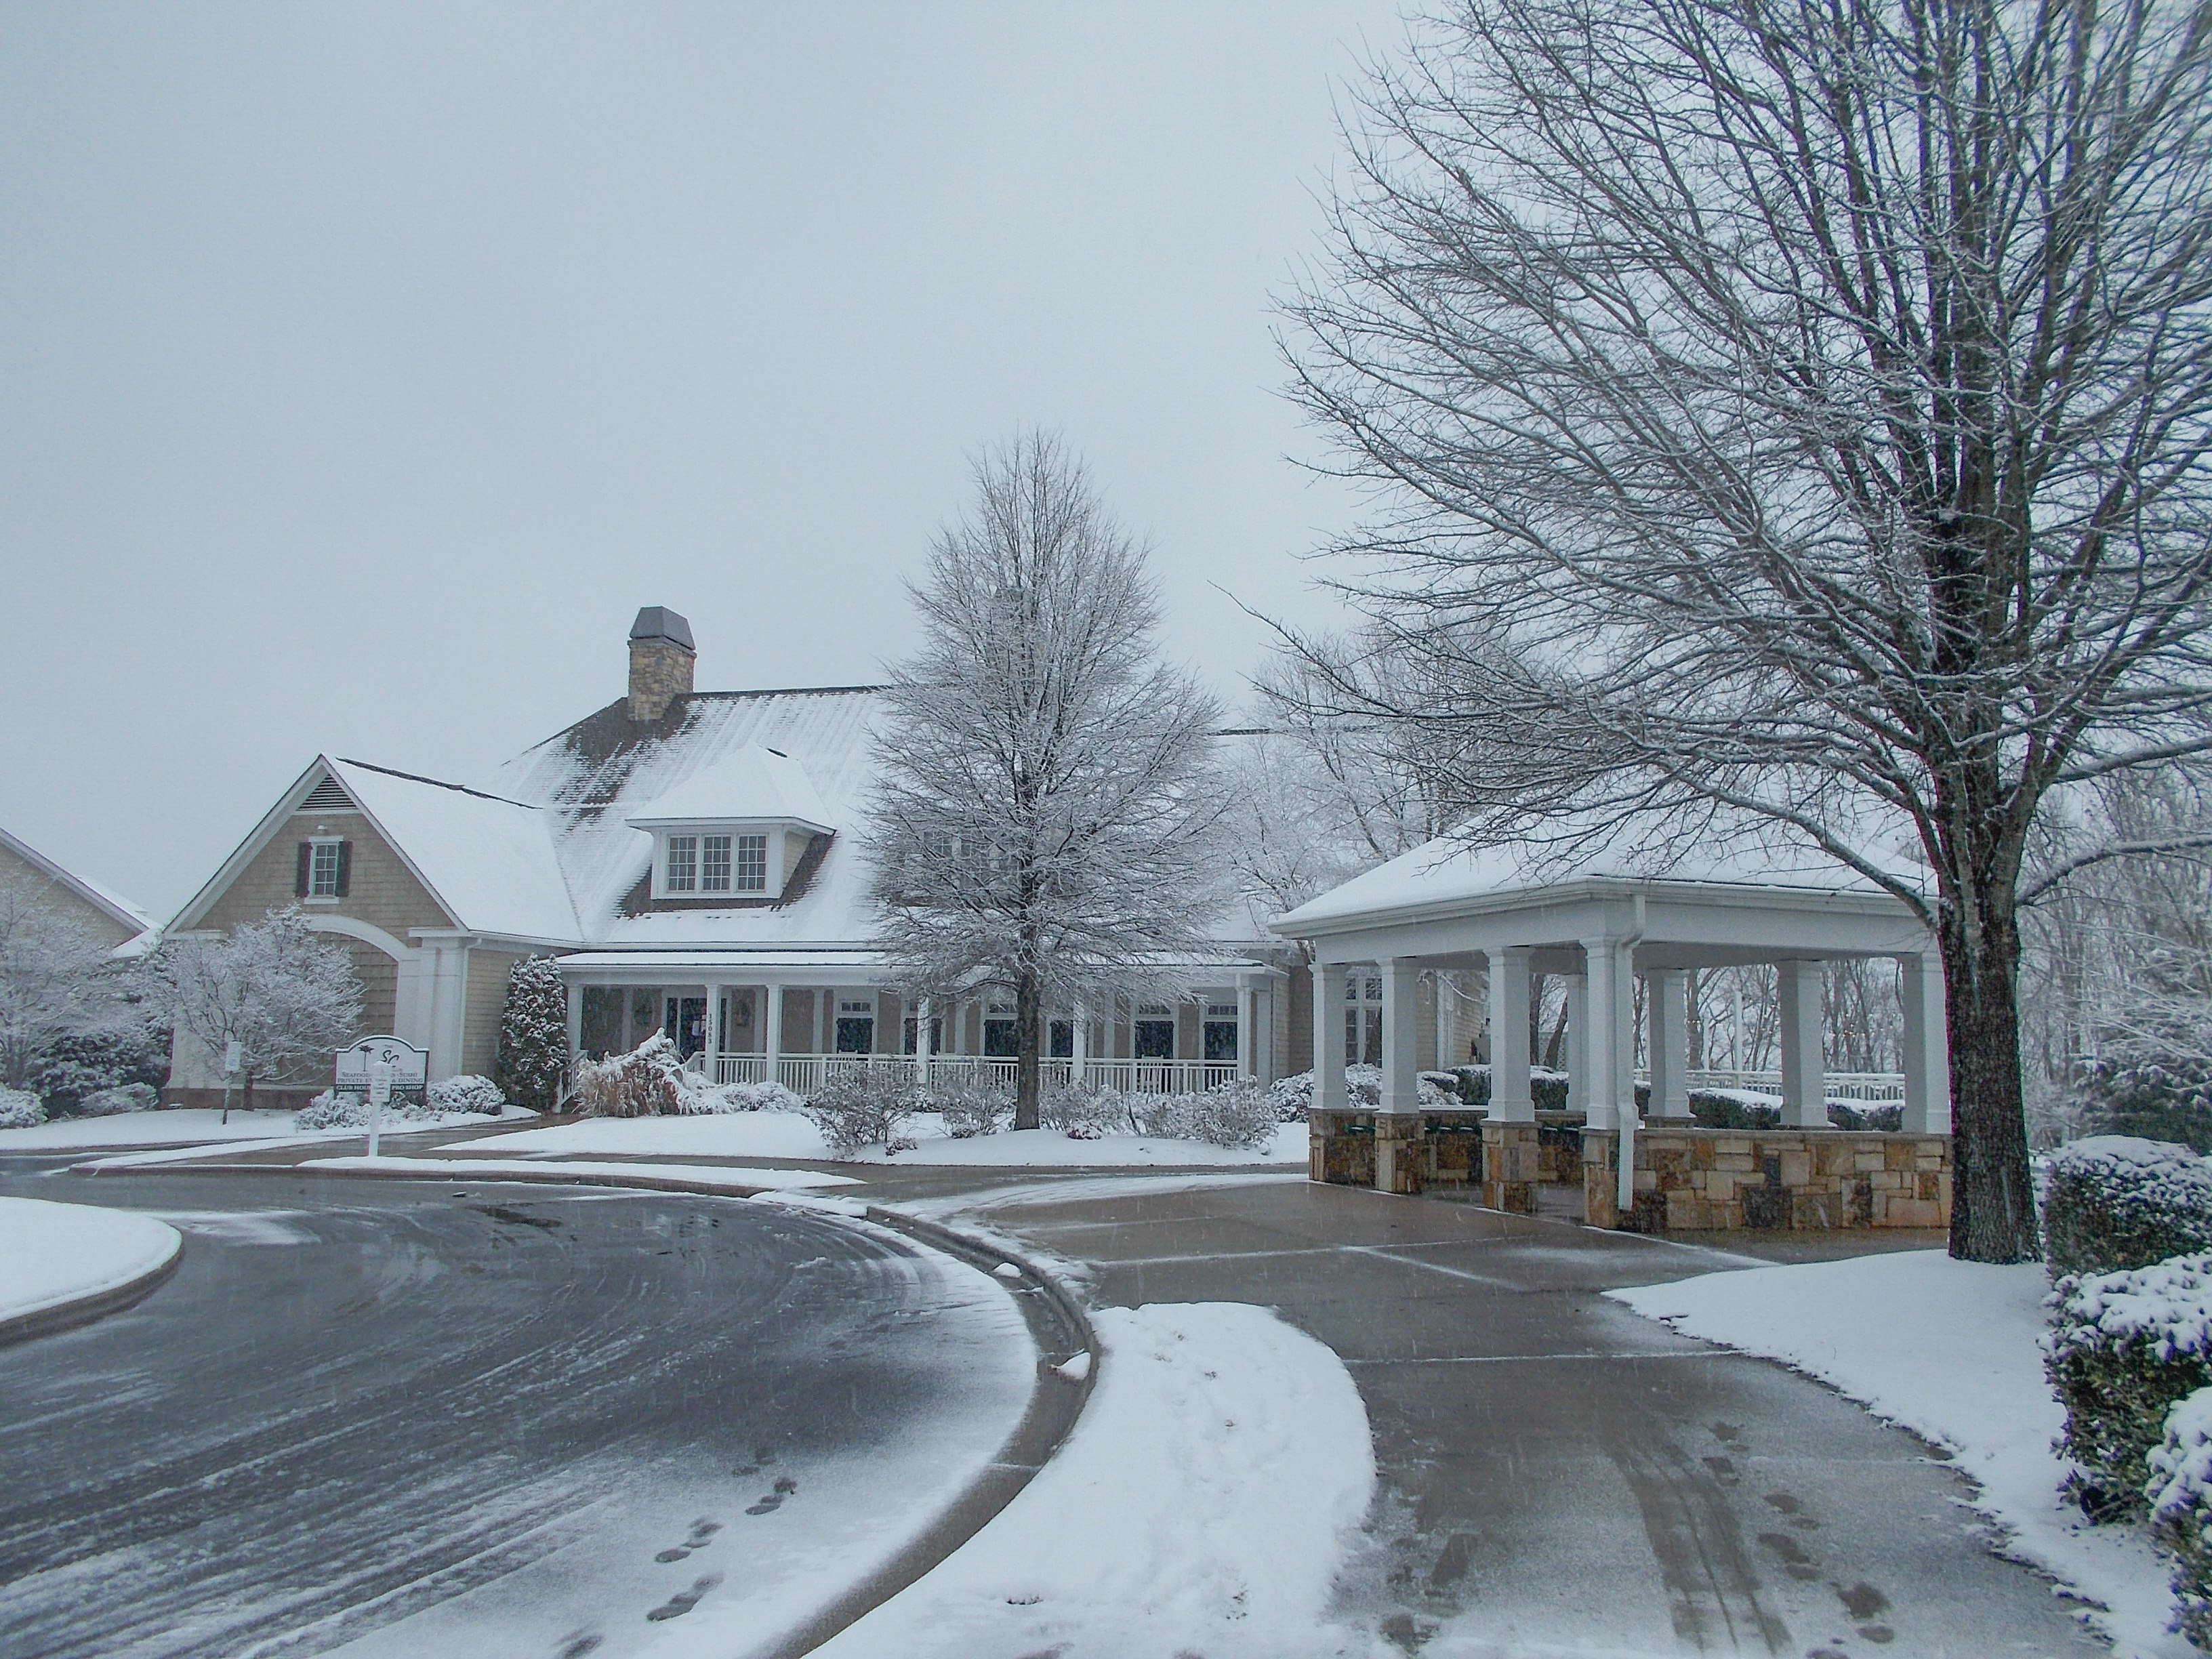 clubhouse in snow 1.jpg